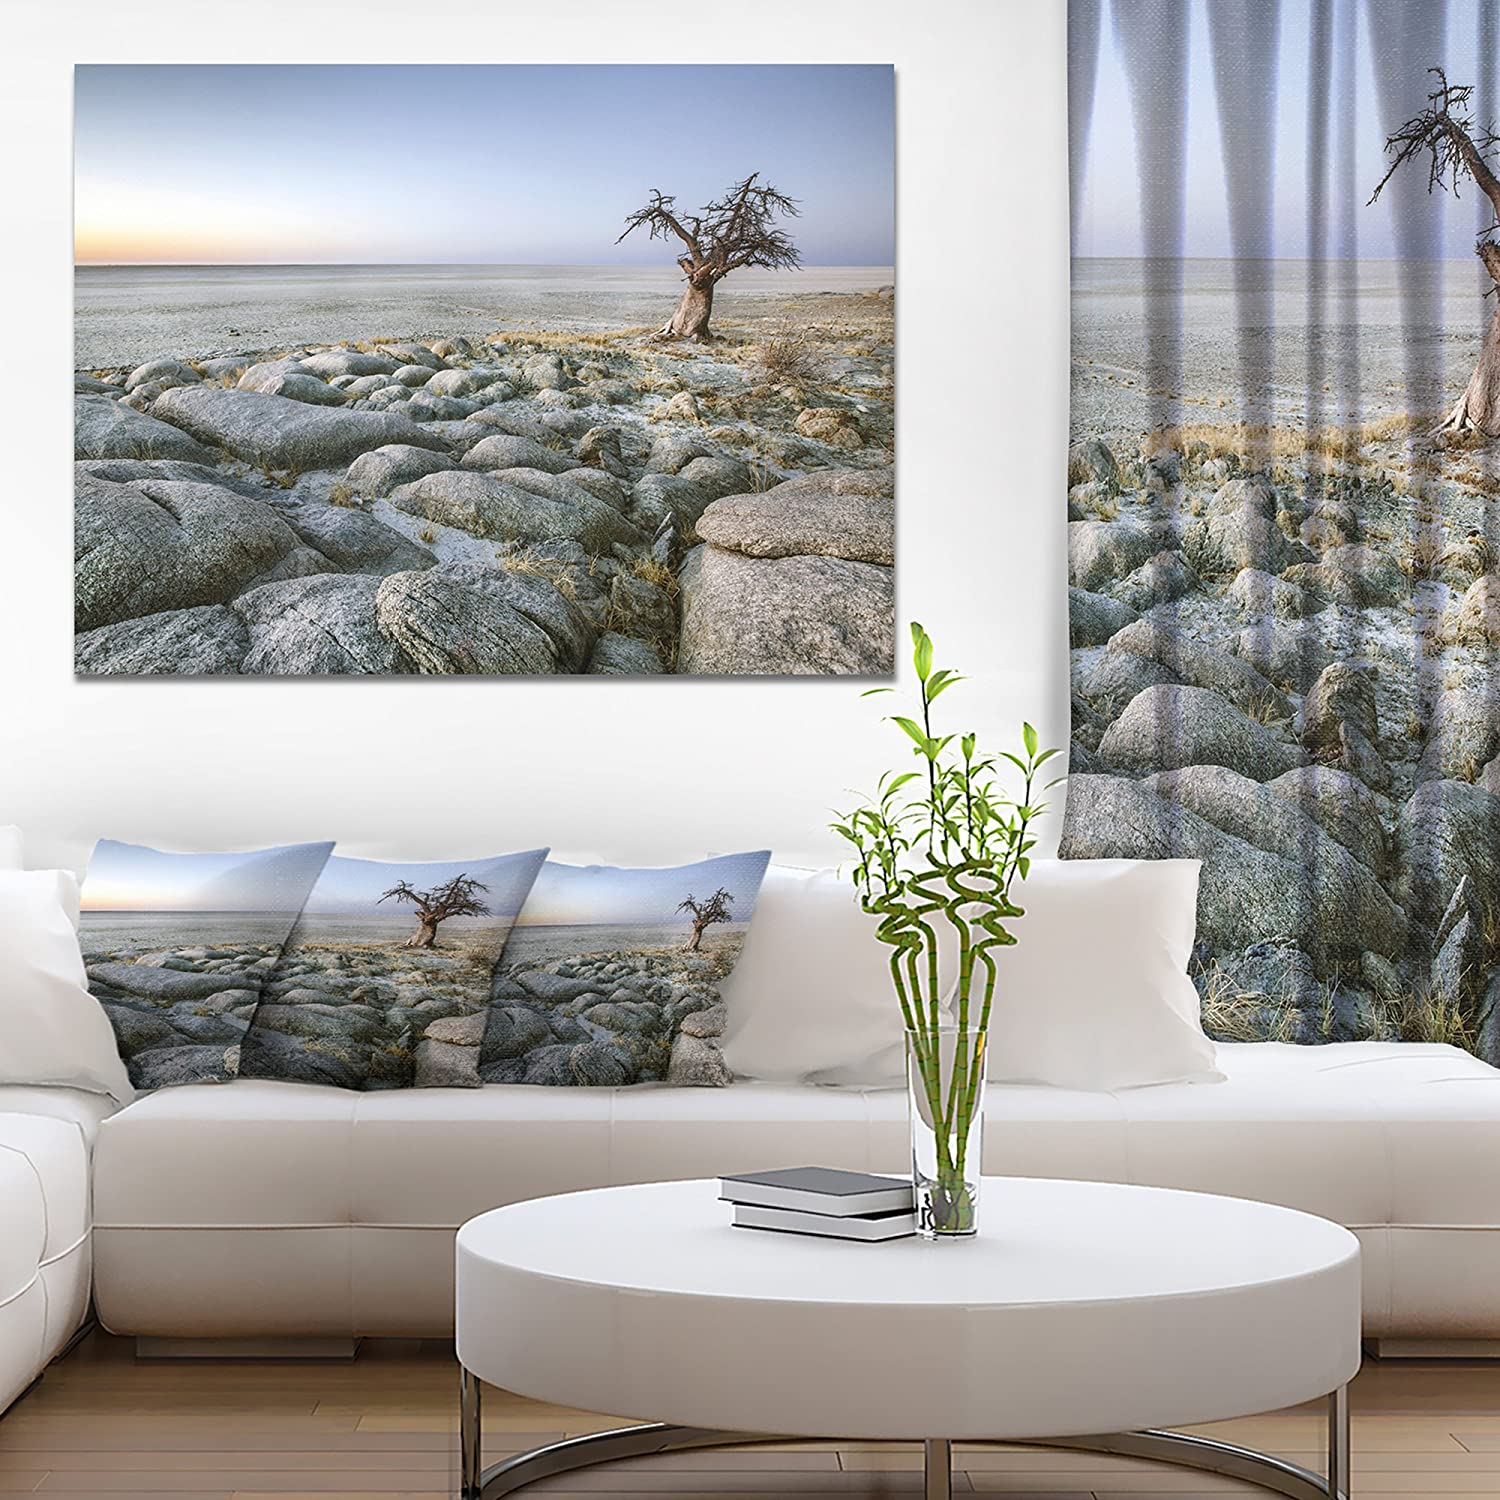 Baobab Tree On Rocky Terrain Large Landscape Canvas Art Amazon In Home Kitchen